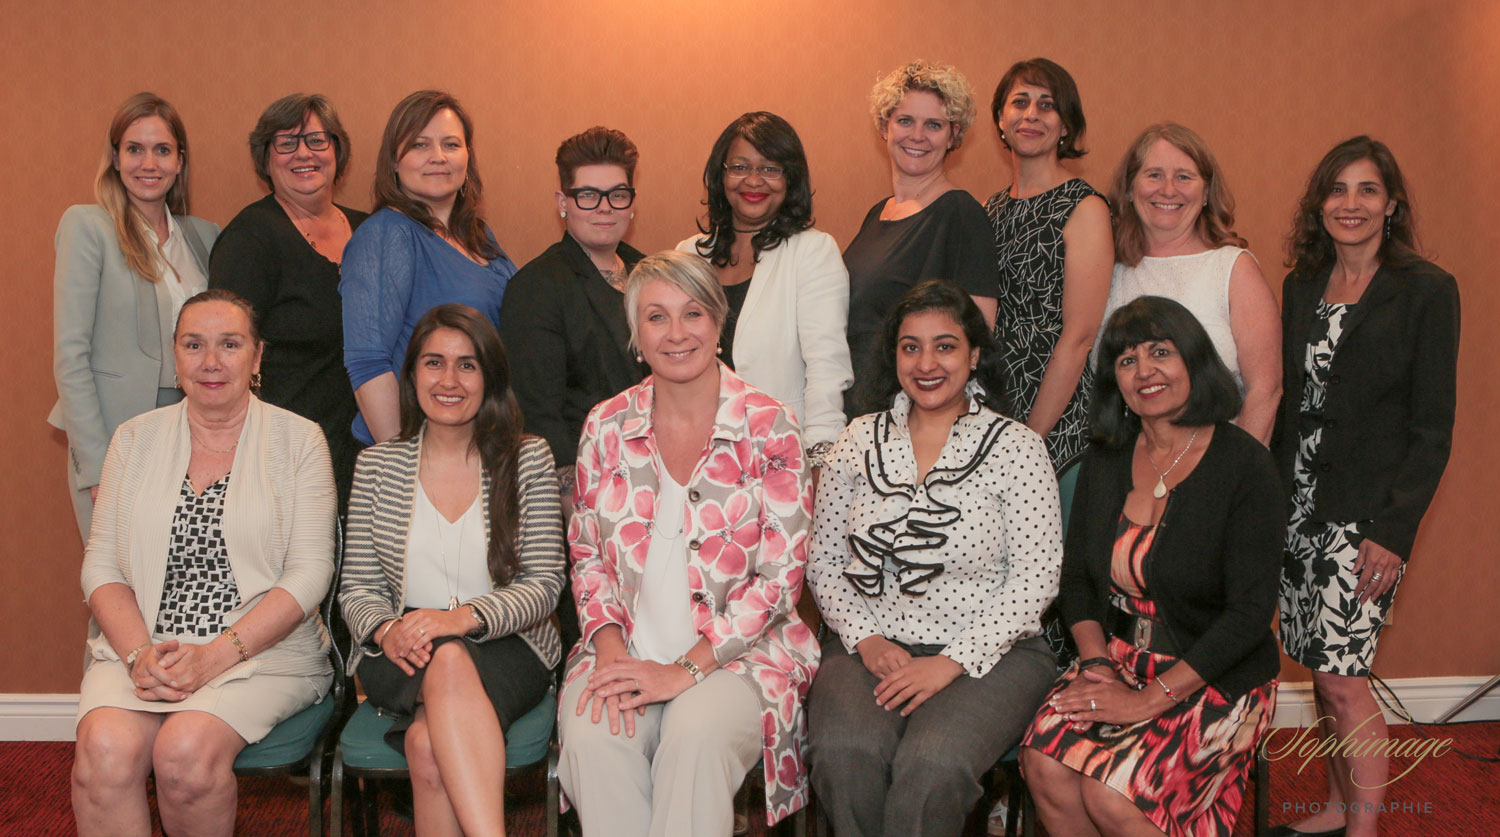 Members of the Advisory Council